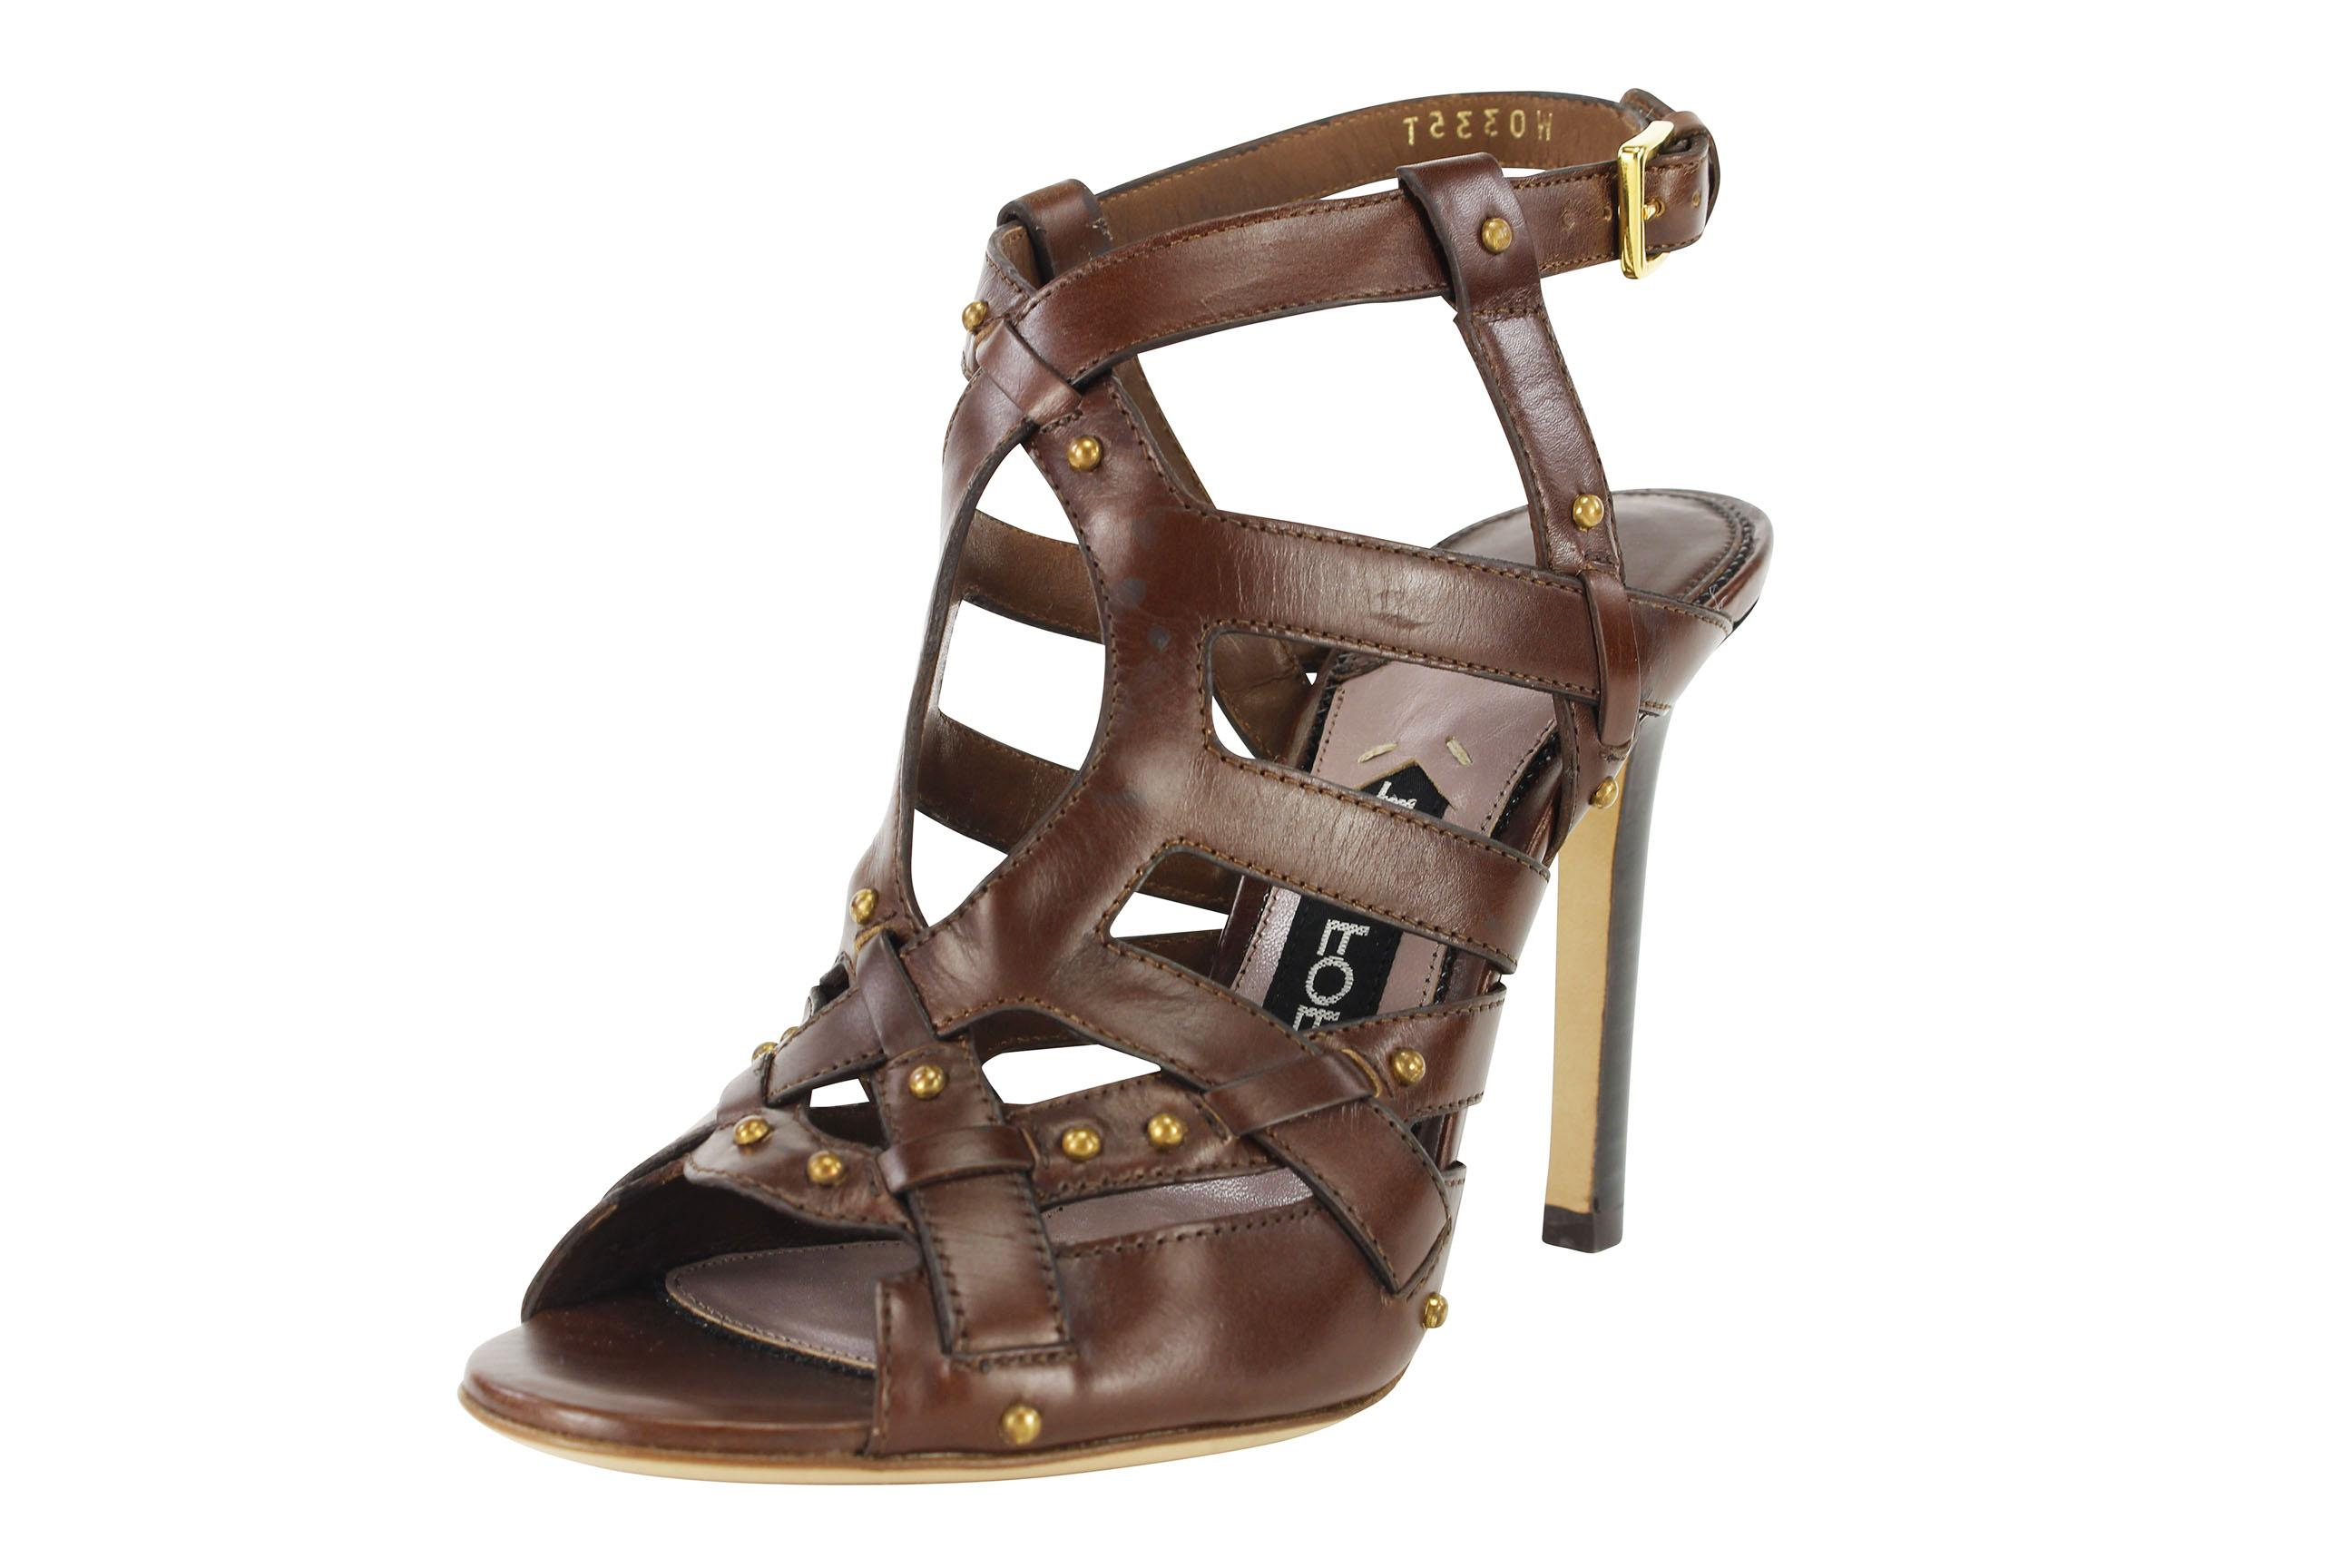 heels who atwoods awards music vs mtv it hmm s ambrose floris afterparty wore ford better beyonc or hot june tom pumps atwood in brian video beyonce